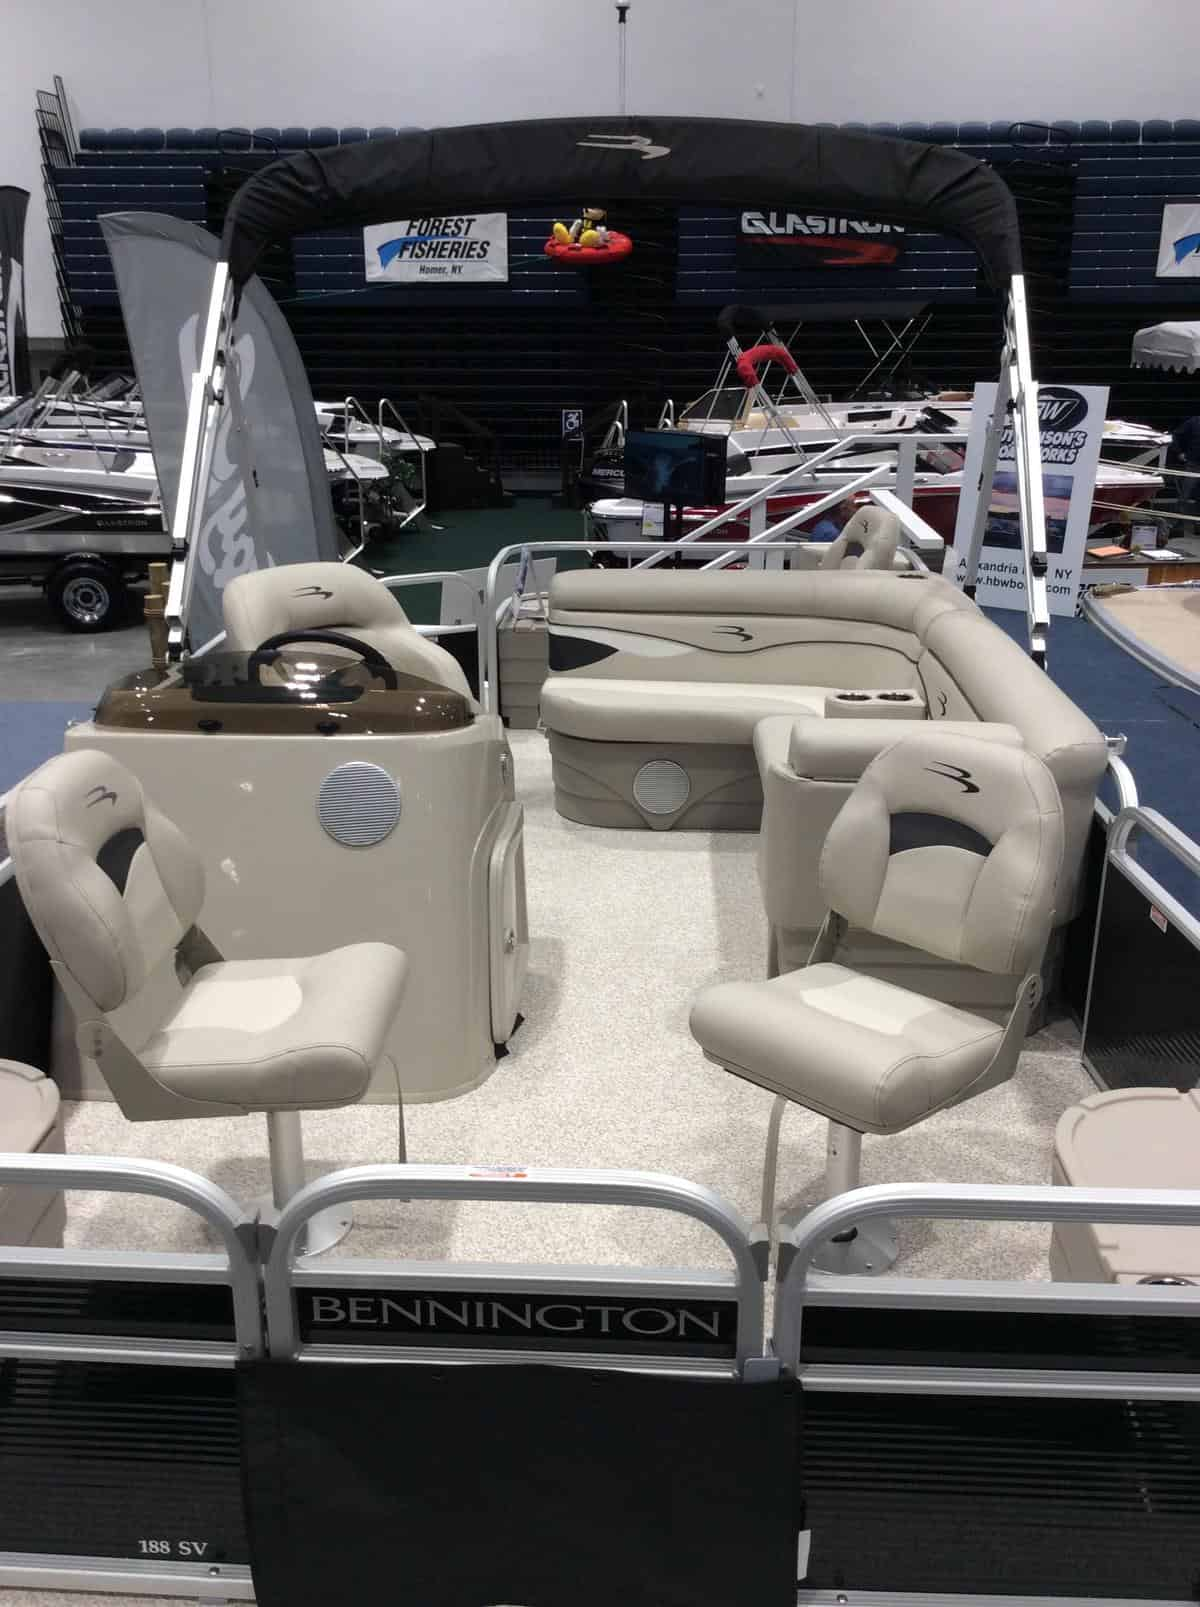 NEW 2019 Bennington 188SFV - Hutchinson's Boat Works